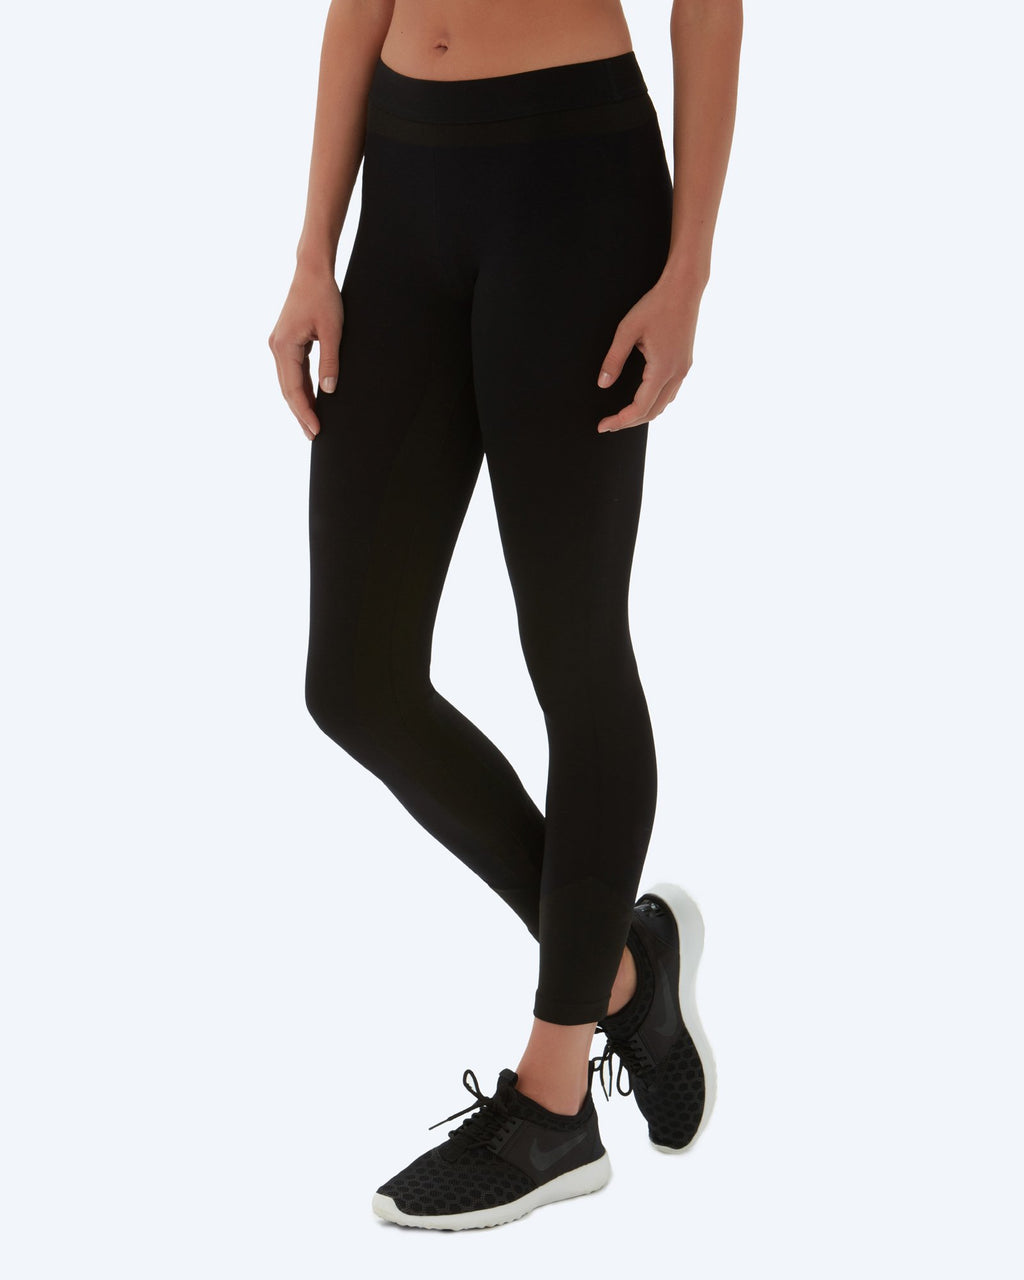 Jessa Sports Legging - Black - Vaara